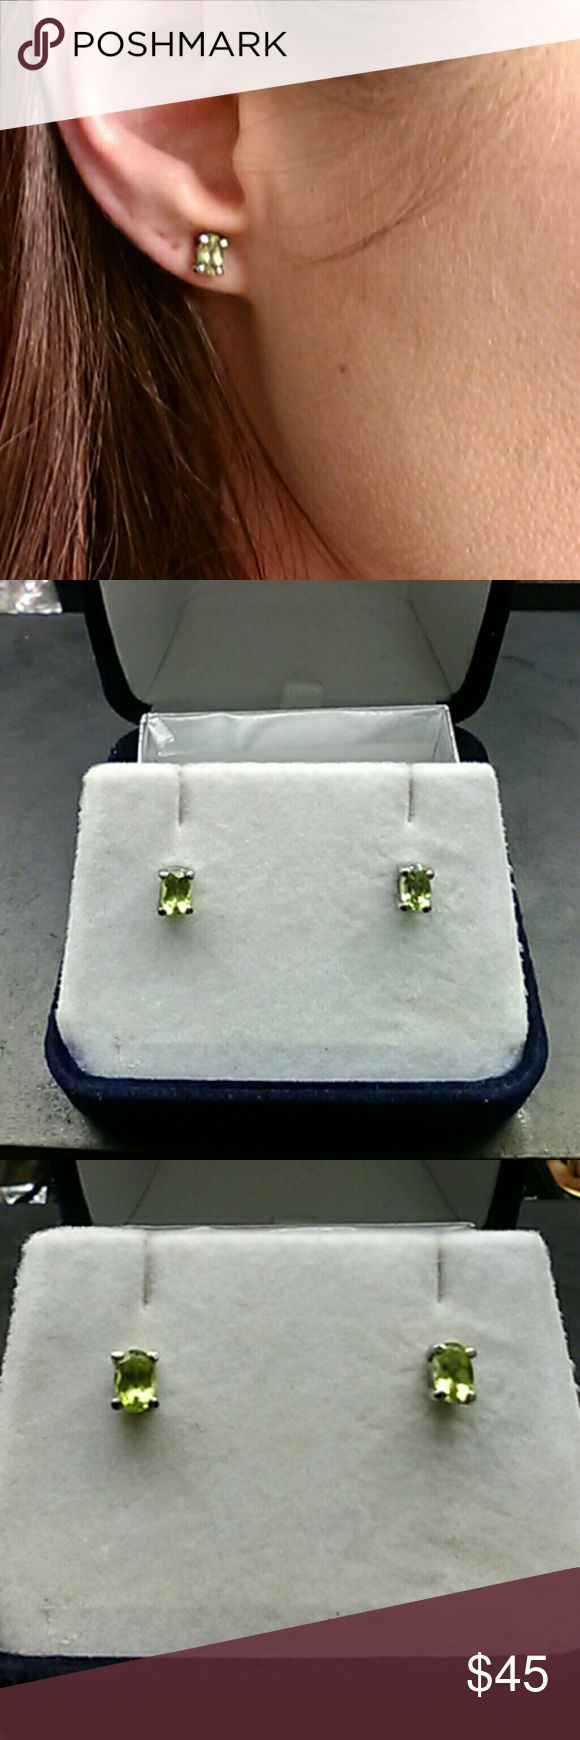 2cts Genuine Peridot 316L Stainless Steel Authentic genuine 2 carat total weight Peridot. Solid 316L stainless steel earrings.flash sale 316L grade stainless is Surgical Steel. It's a low nickel steel used in surgical instruments, and other medical equipment. It's considered hypoallergenic, and won't get gross tarnish or rust. estate 925 Jewelry Earrings